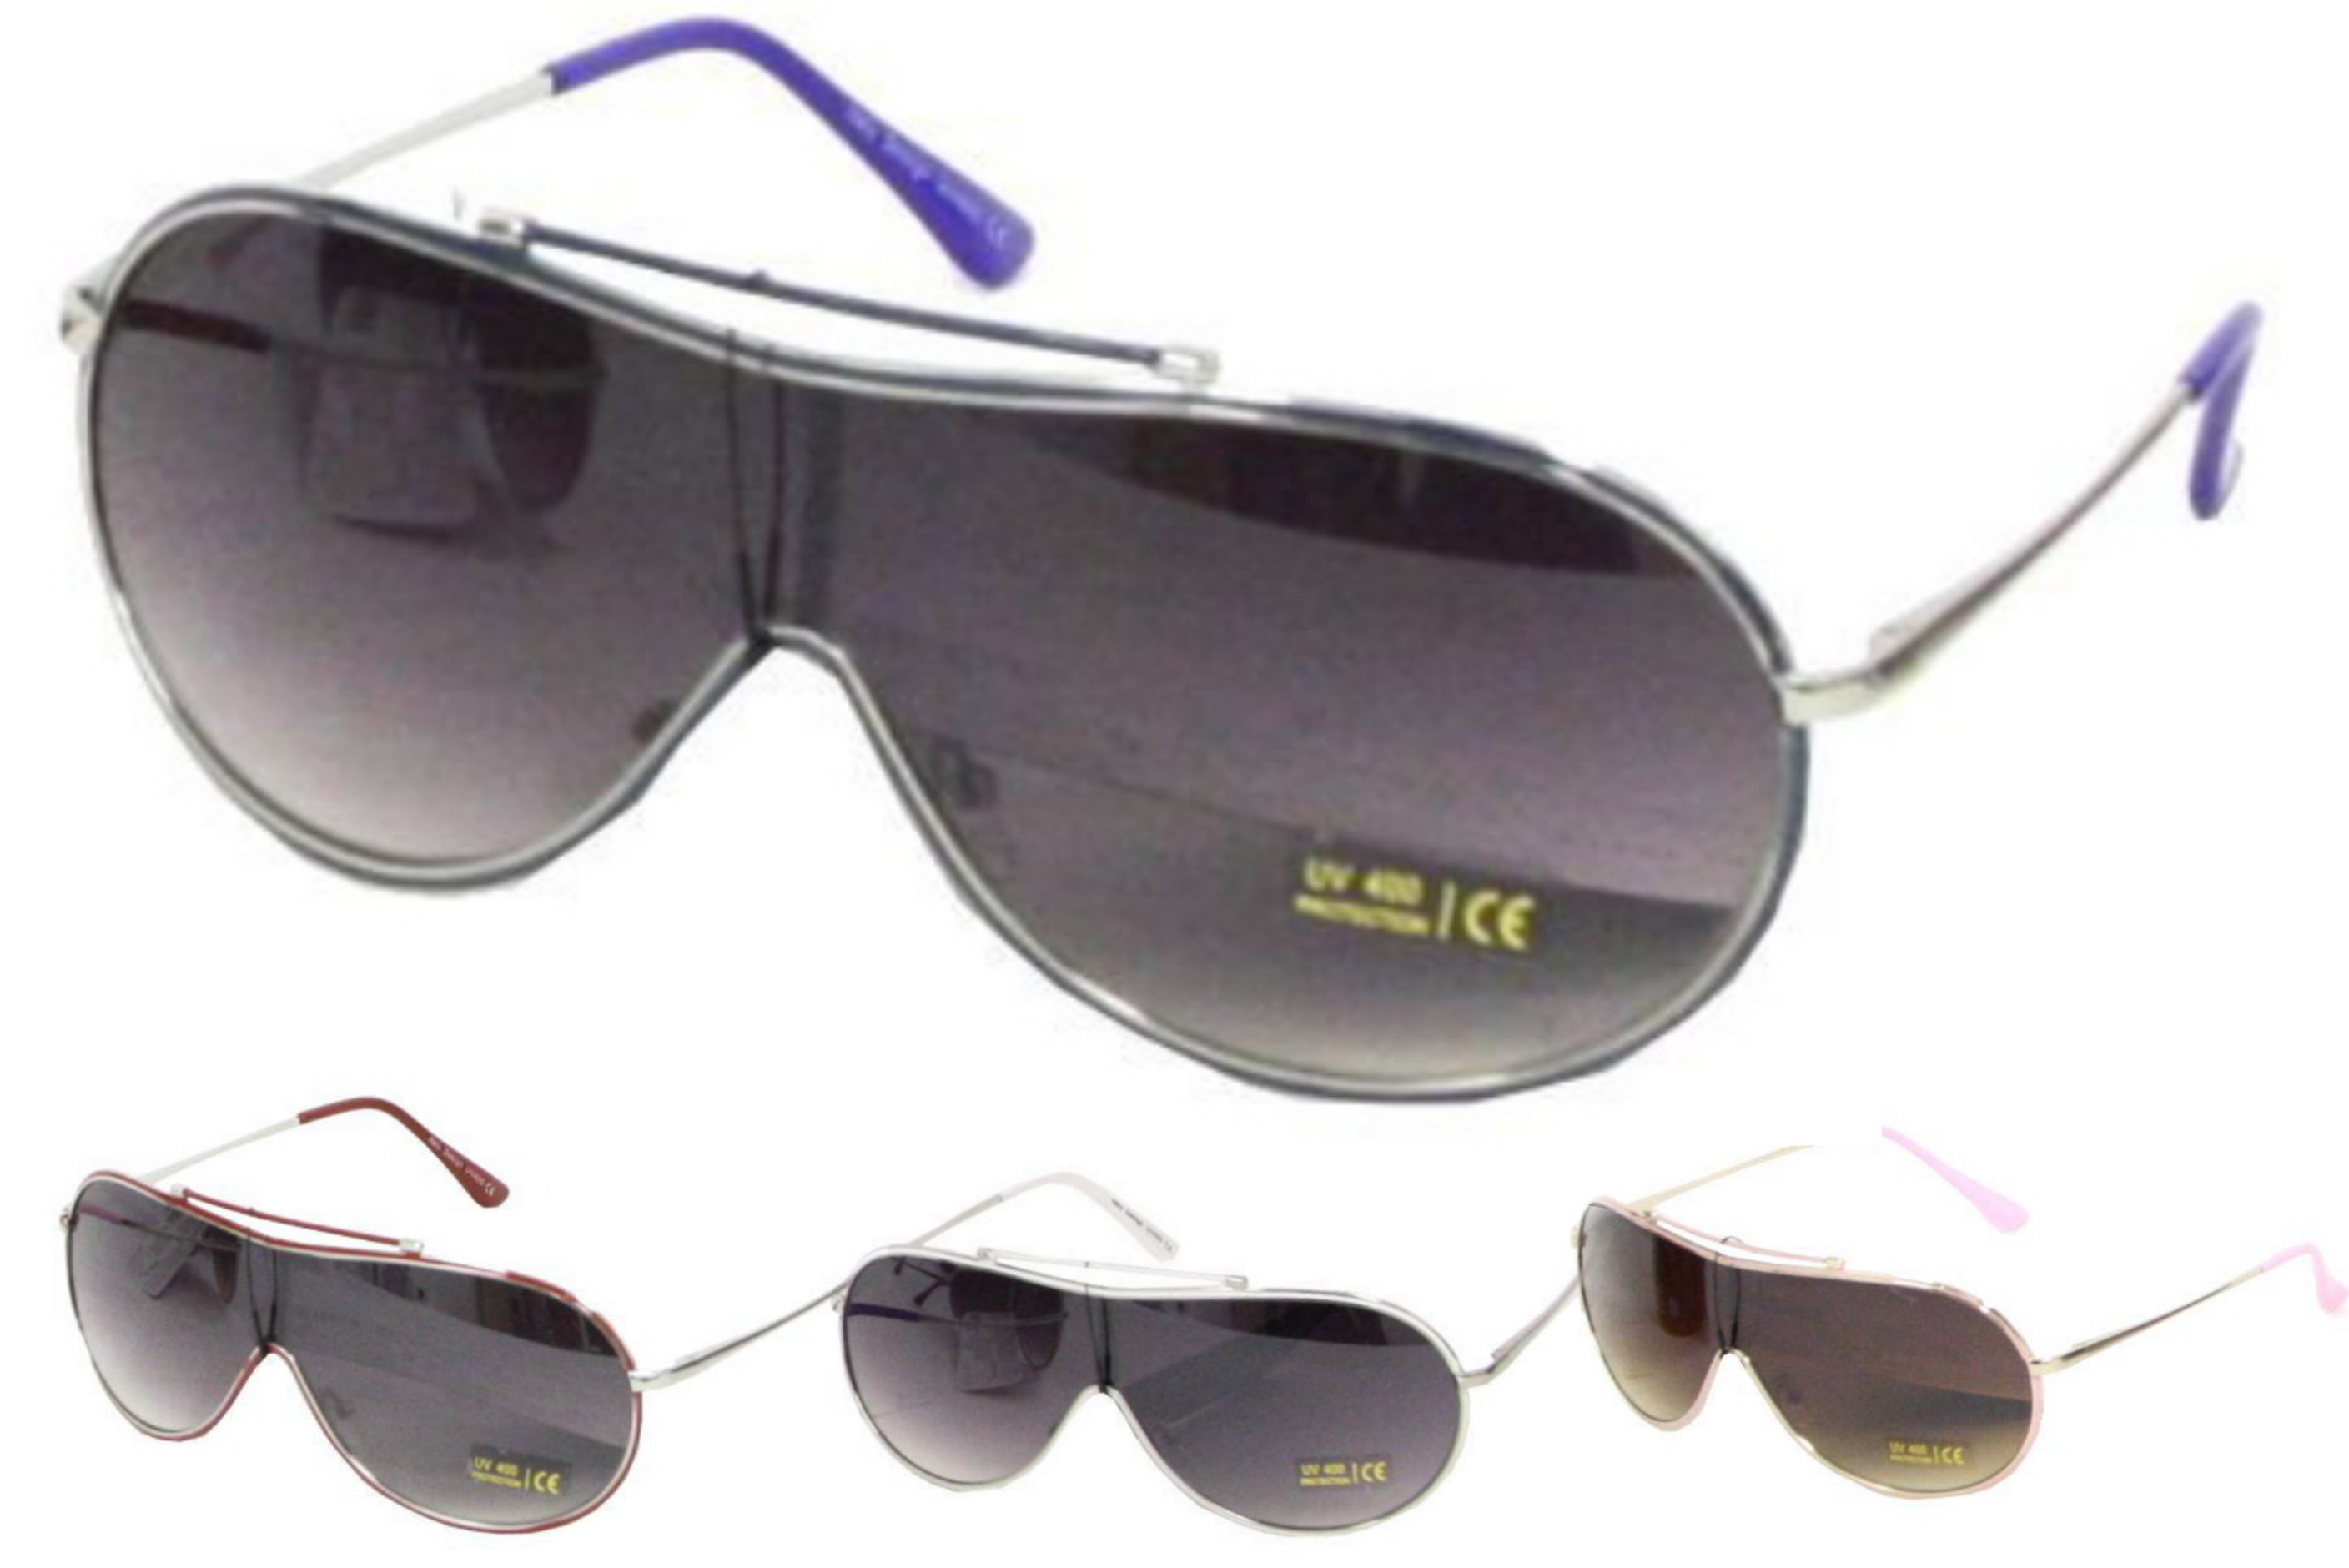 Ladies Metal Frame Designer Sunglasses - 4 Assorted